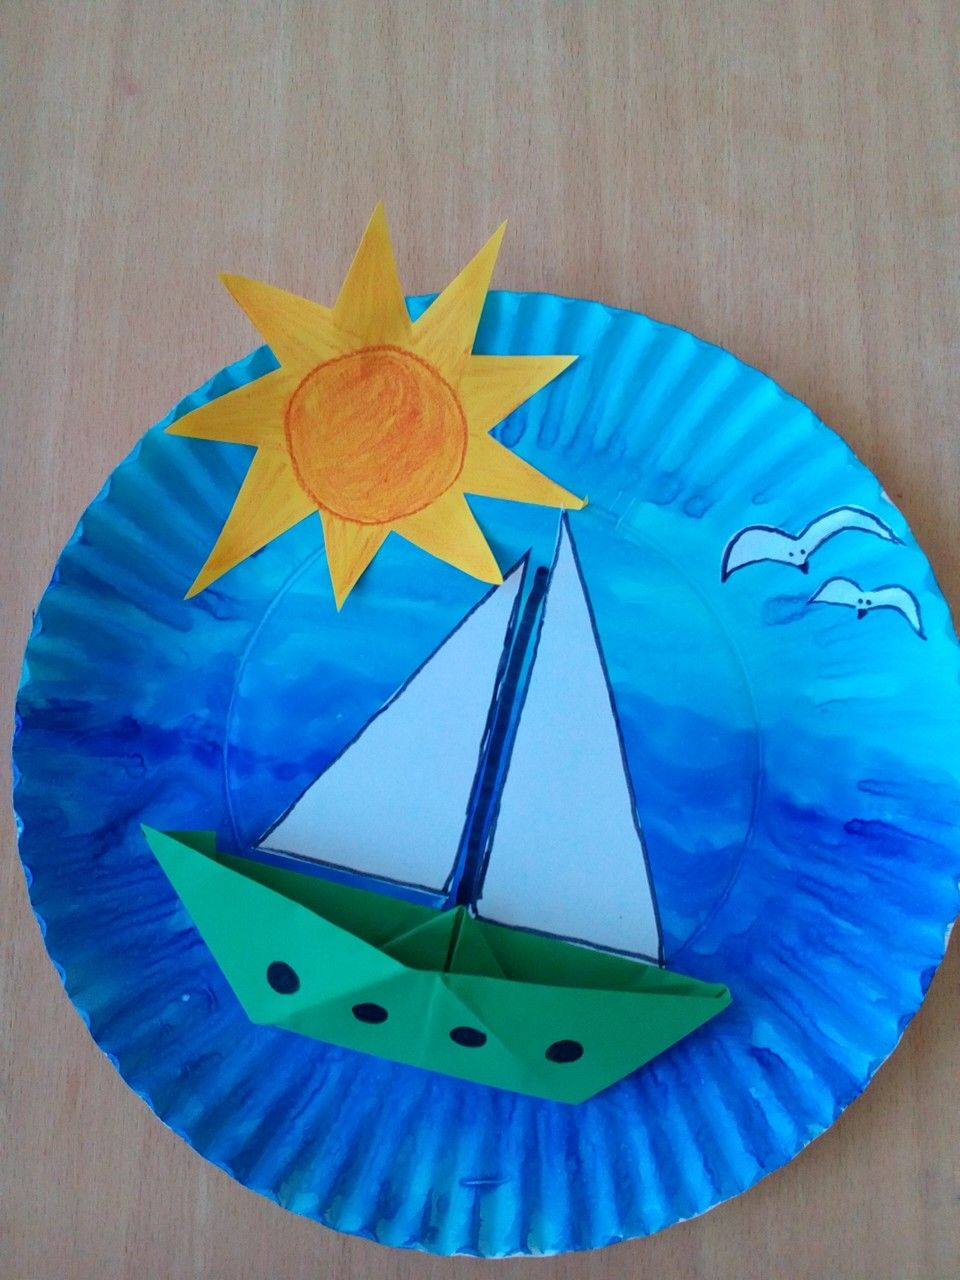 Paper plate boat under the sun craft for kids & Paper plate boat under the sun craft for kids | origami | Pinterest ...